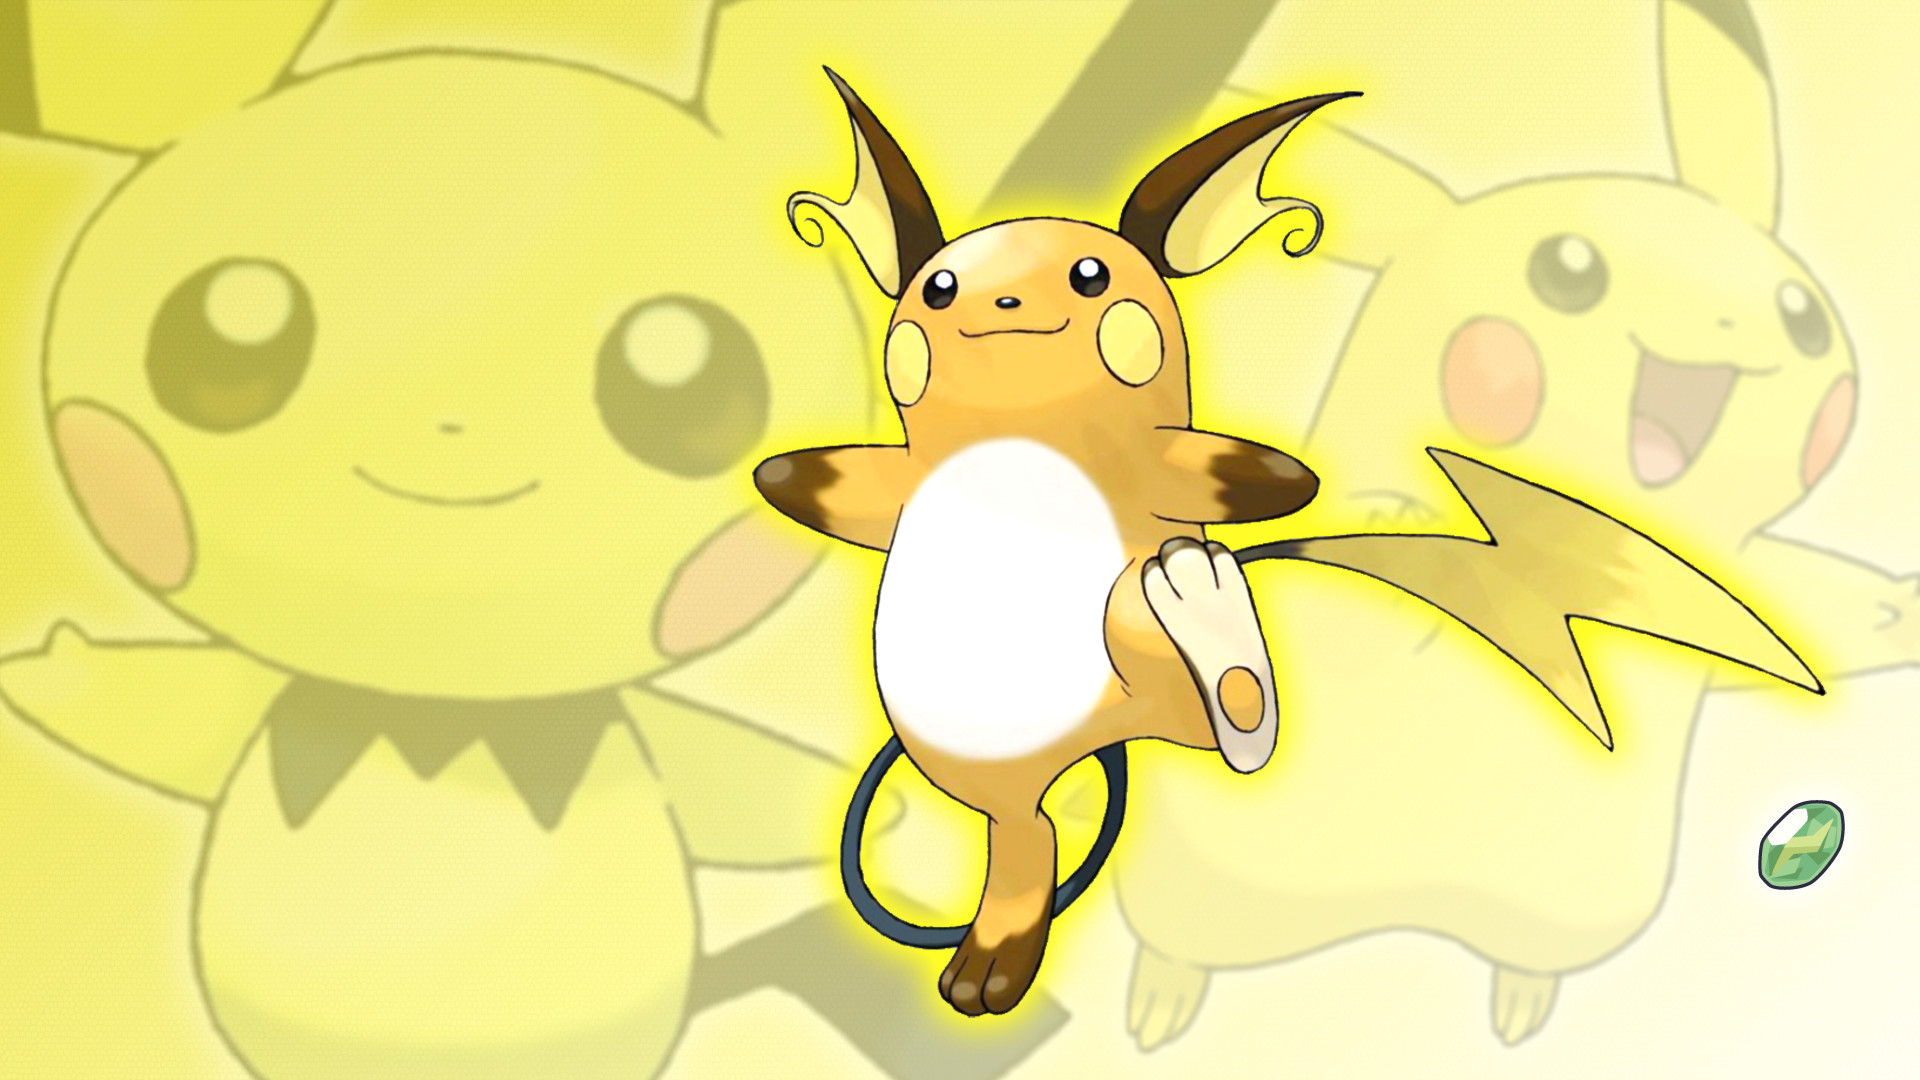 pokemon pic: Full HD Pictures – pokemon category   ololoshka   Pinterest    Full hd pictures, Hd widescreen wallpapers and Widescreen wallpaper